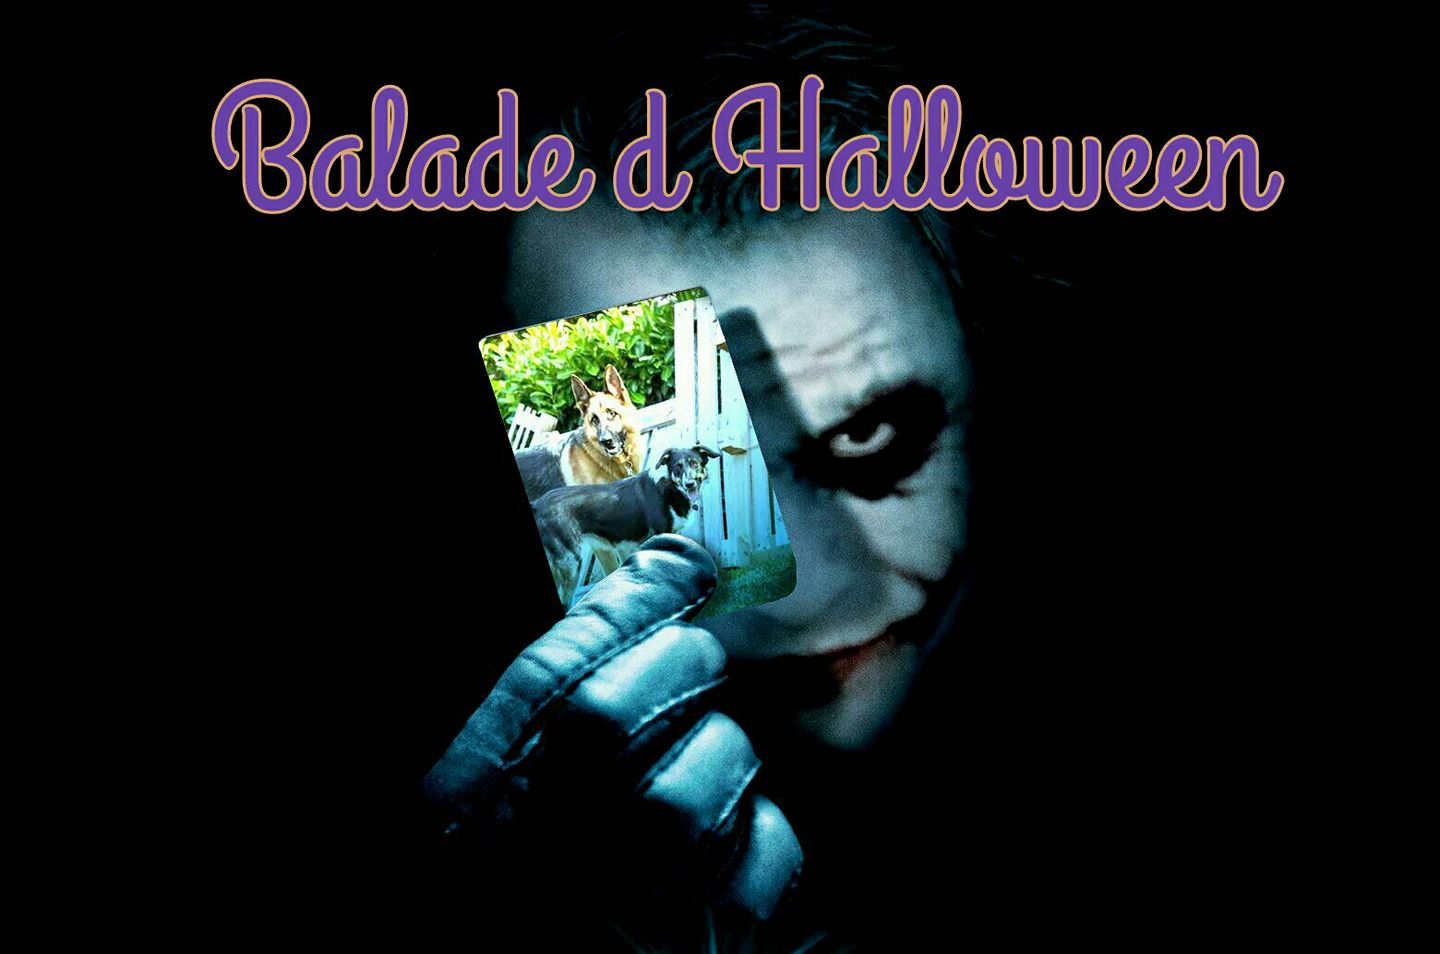 balade chien , haloween , ars canis